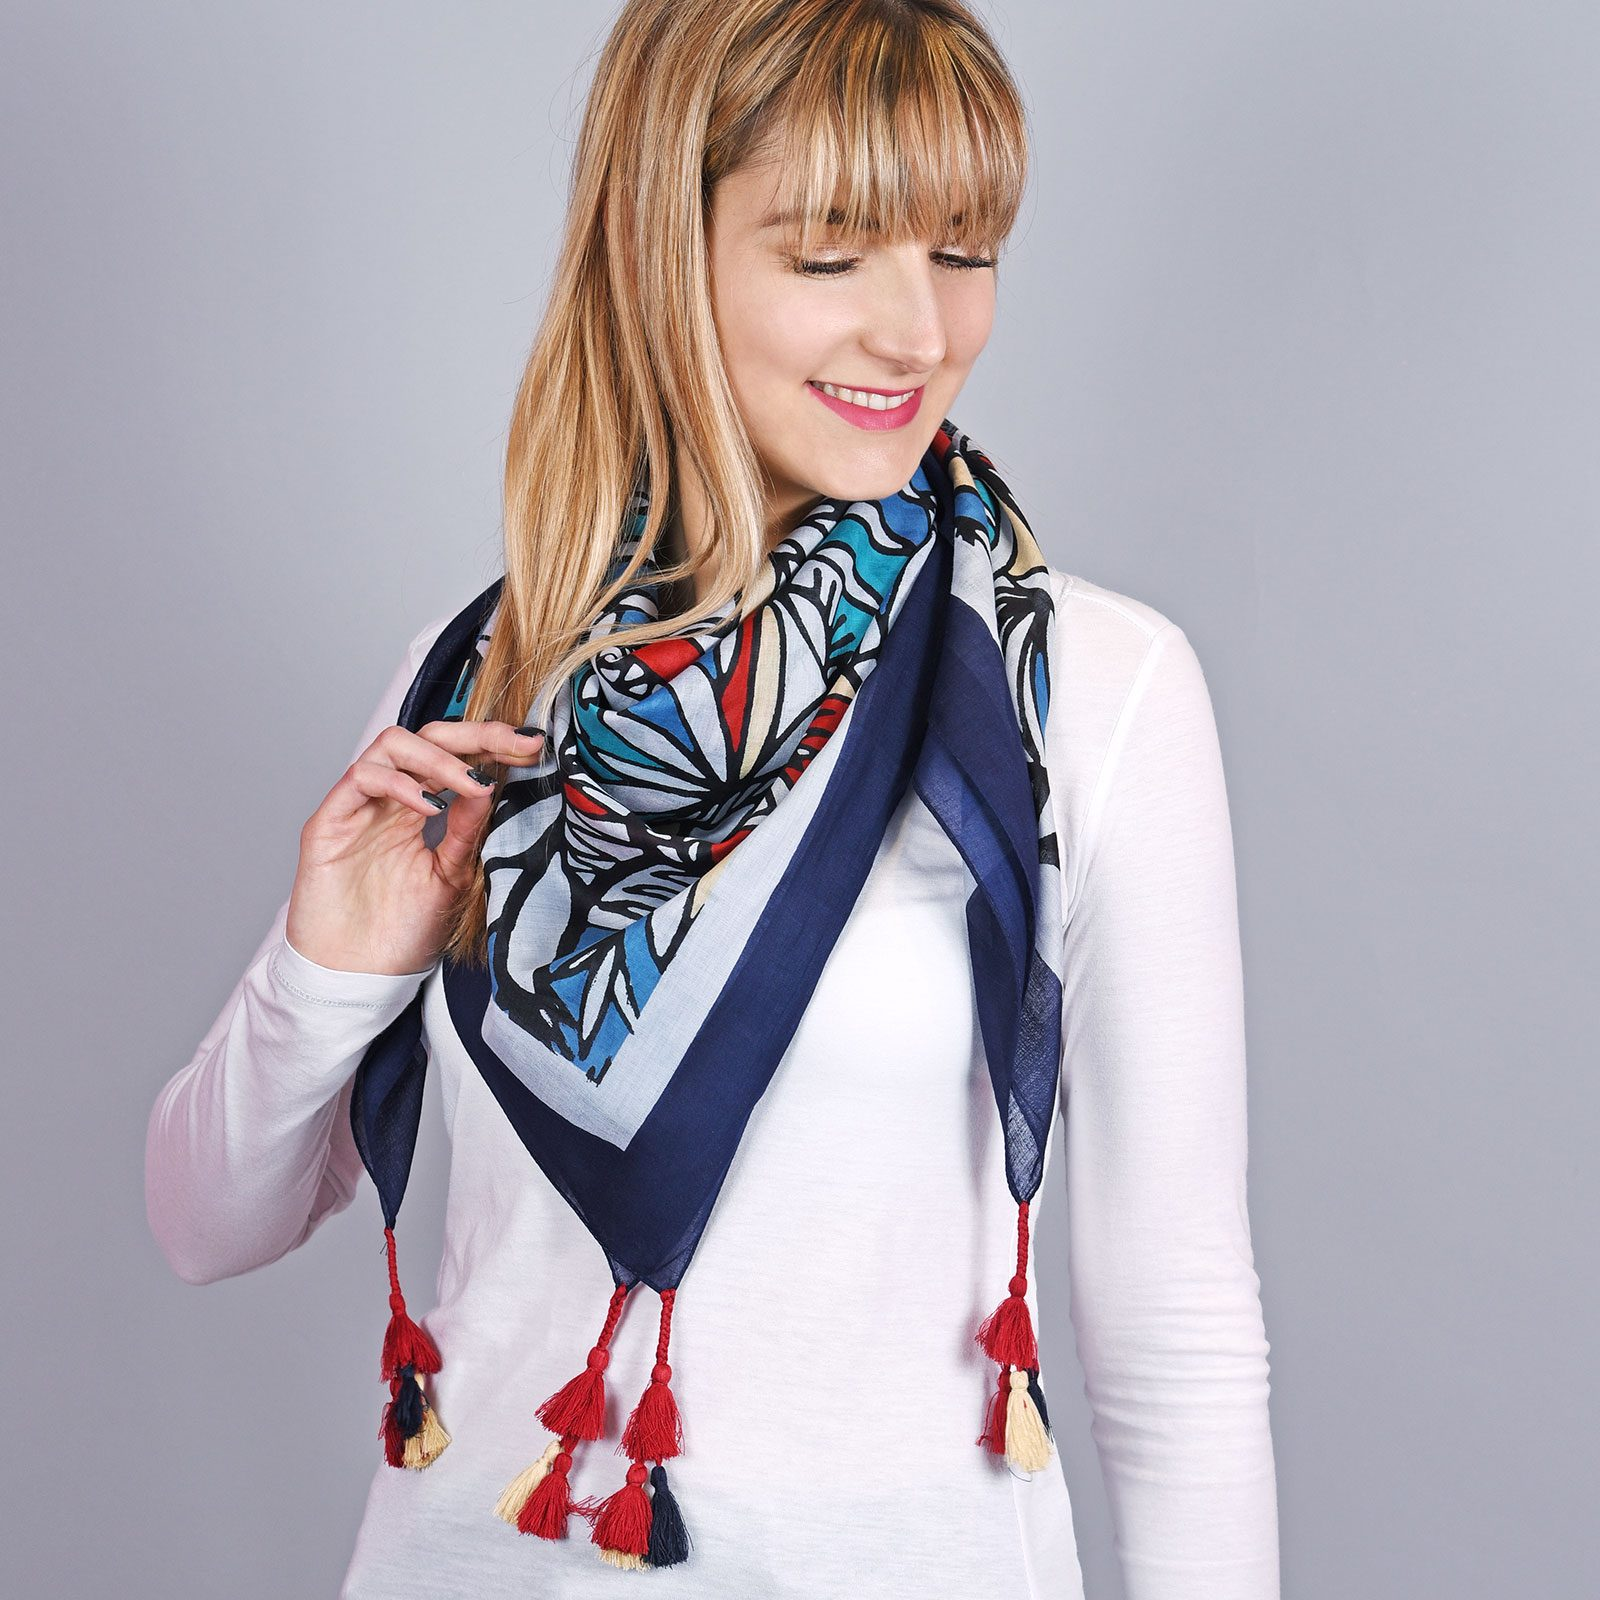 http://lookbook.allee-du-foulard.fr/wp-content/uploads/2018/08/AT-04330-VF16-1-foulard-carre-fantaisie-bleu-1600x1600.jpg